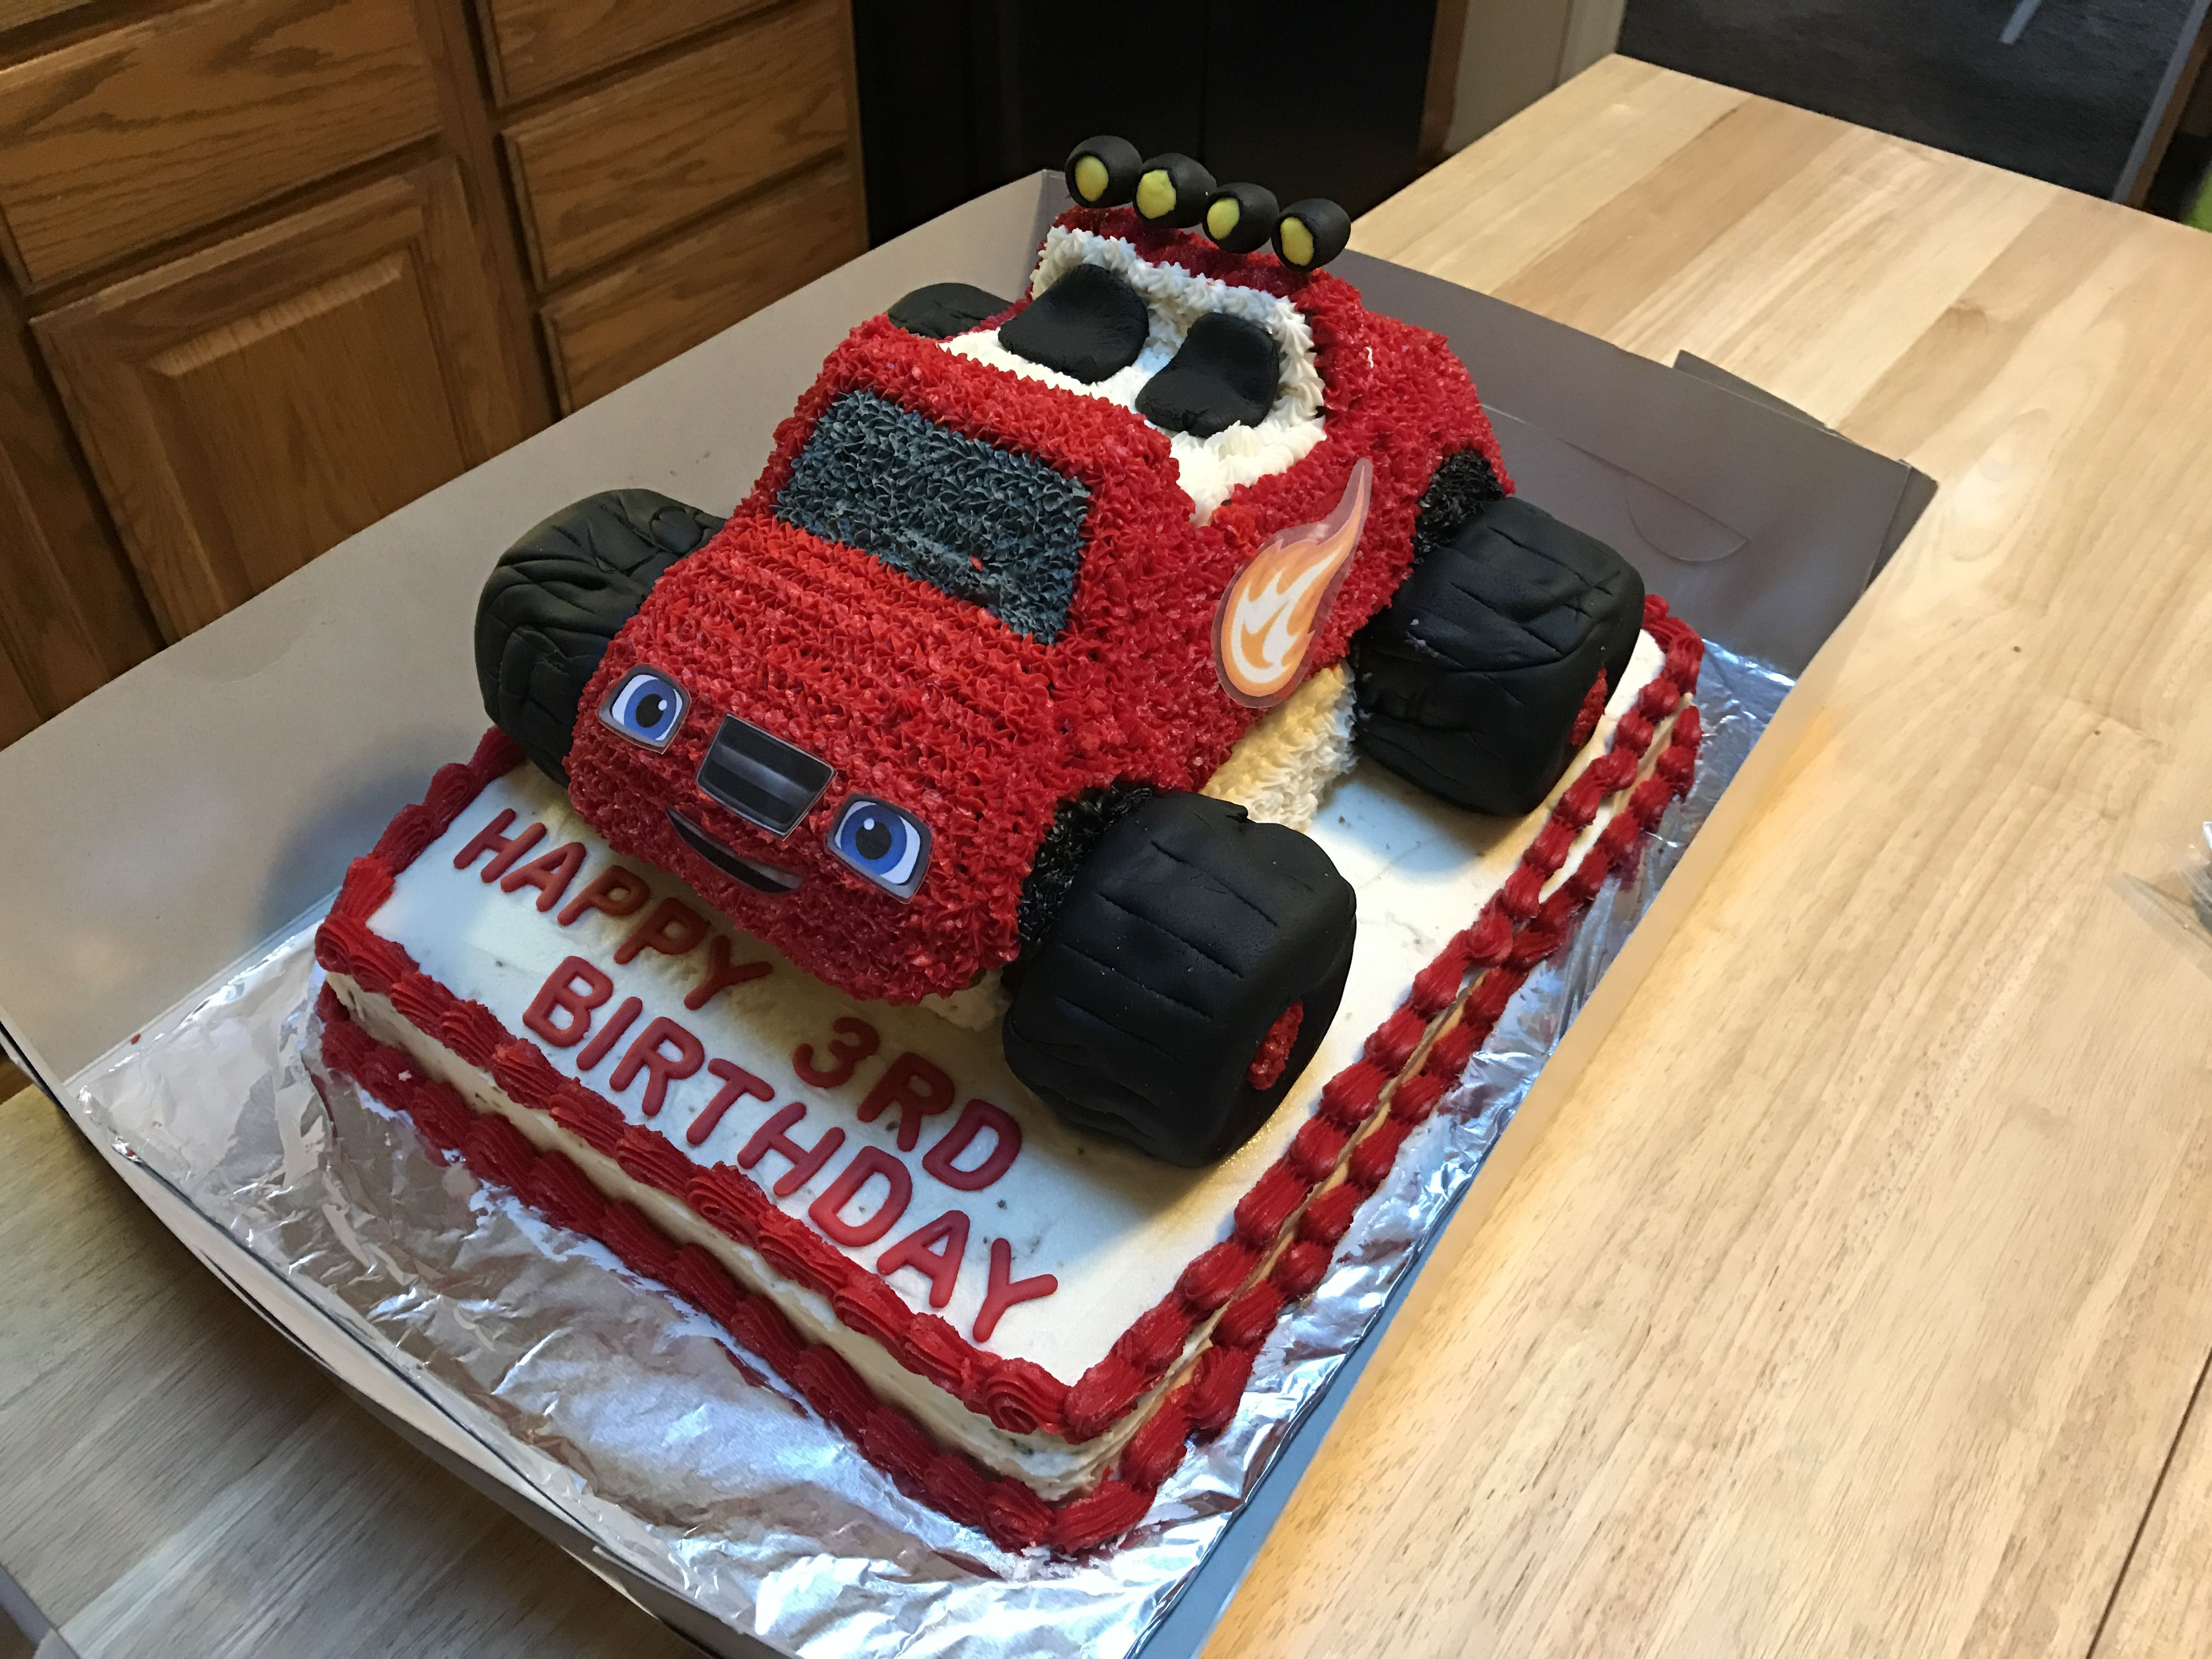 Blaze And The Monster Machines Cake I Made For My Nephew S